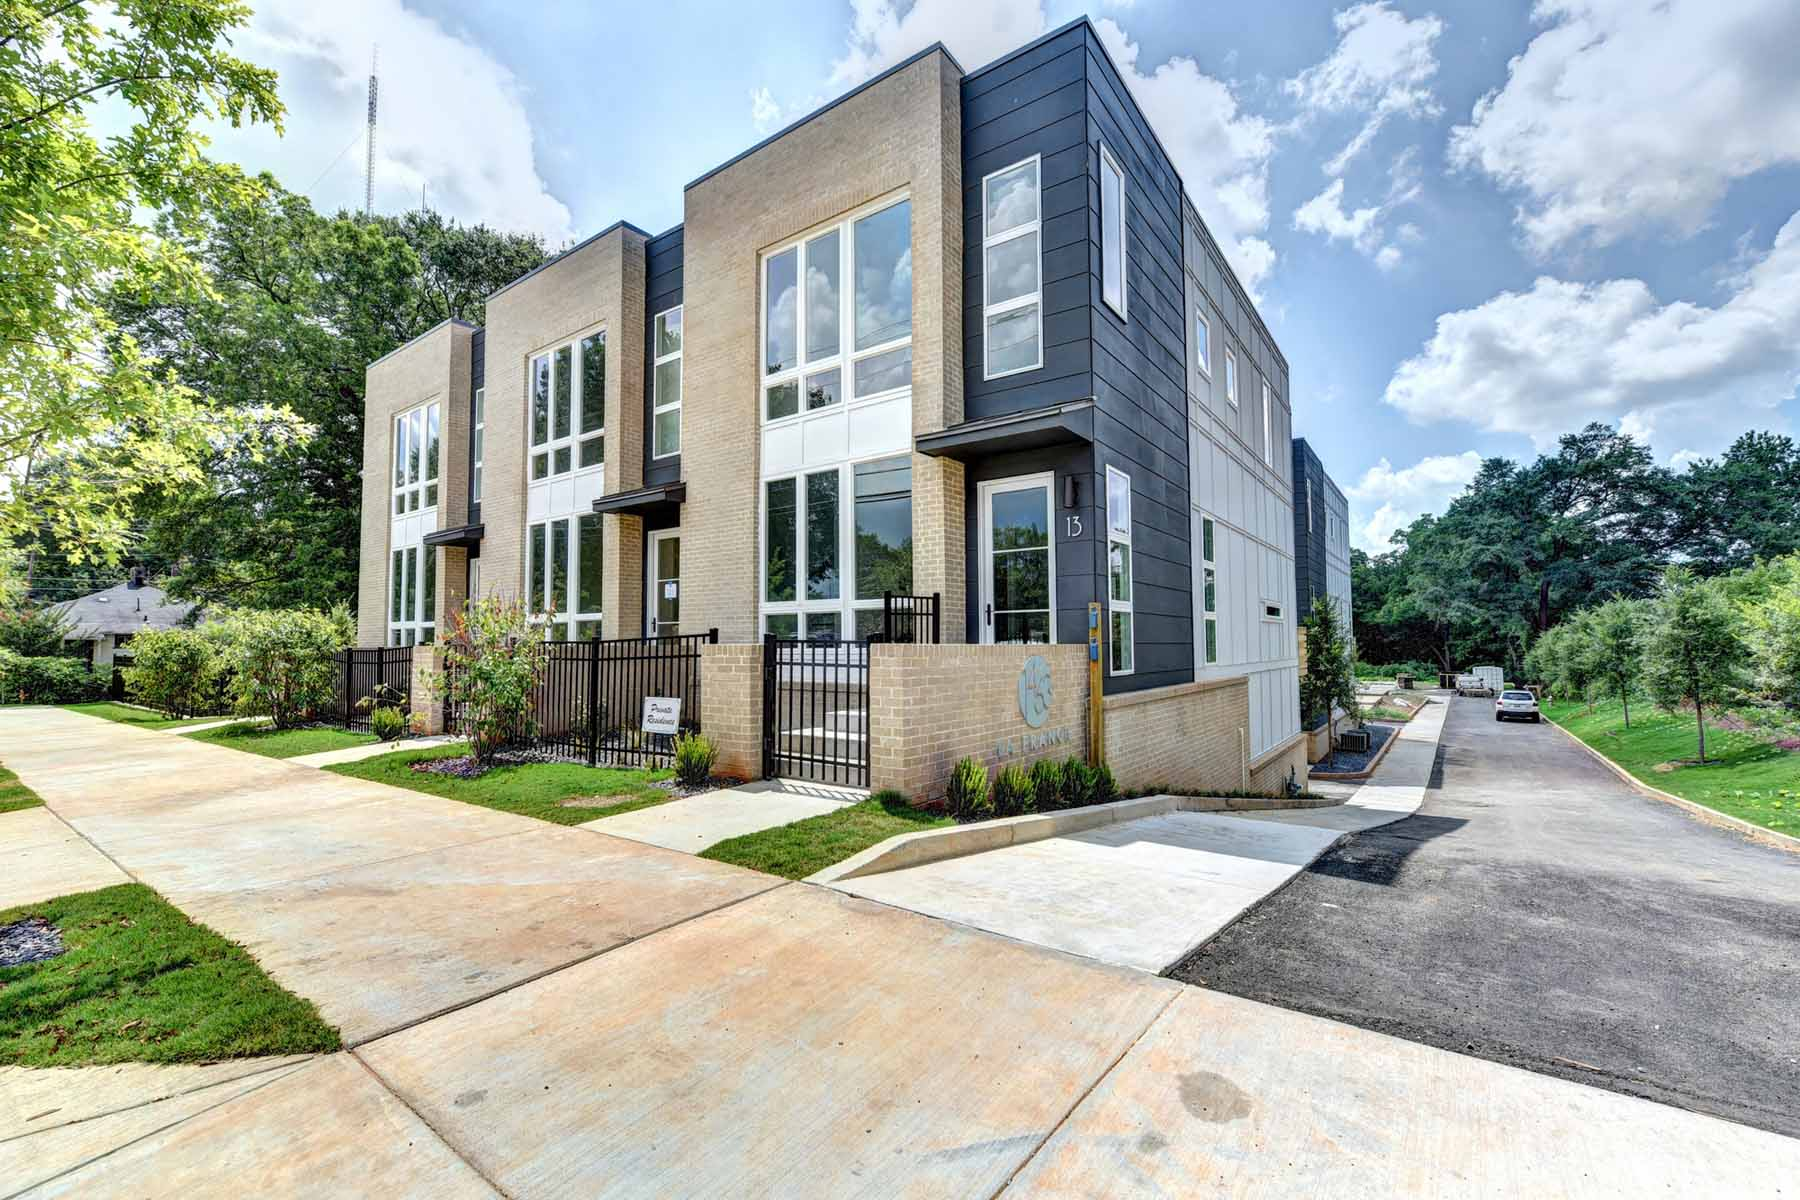 多棟聯建住宅 為 出售 在 A Community of 15 Modern Townhomes Built by Cablik Enterprises 1463 La France St, NE Unit 4, Atlanta, 喬治亞州, 30307 美國